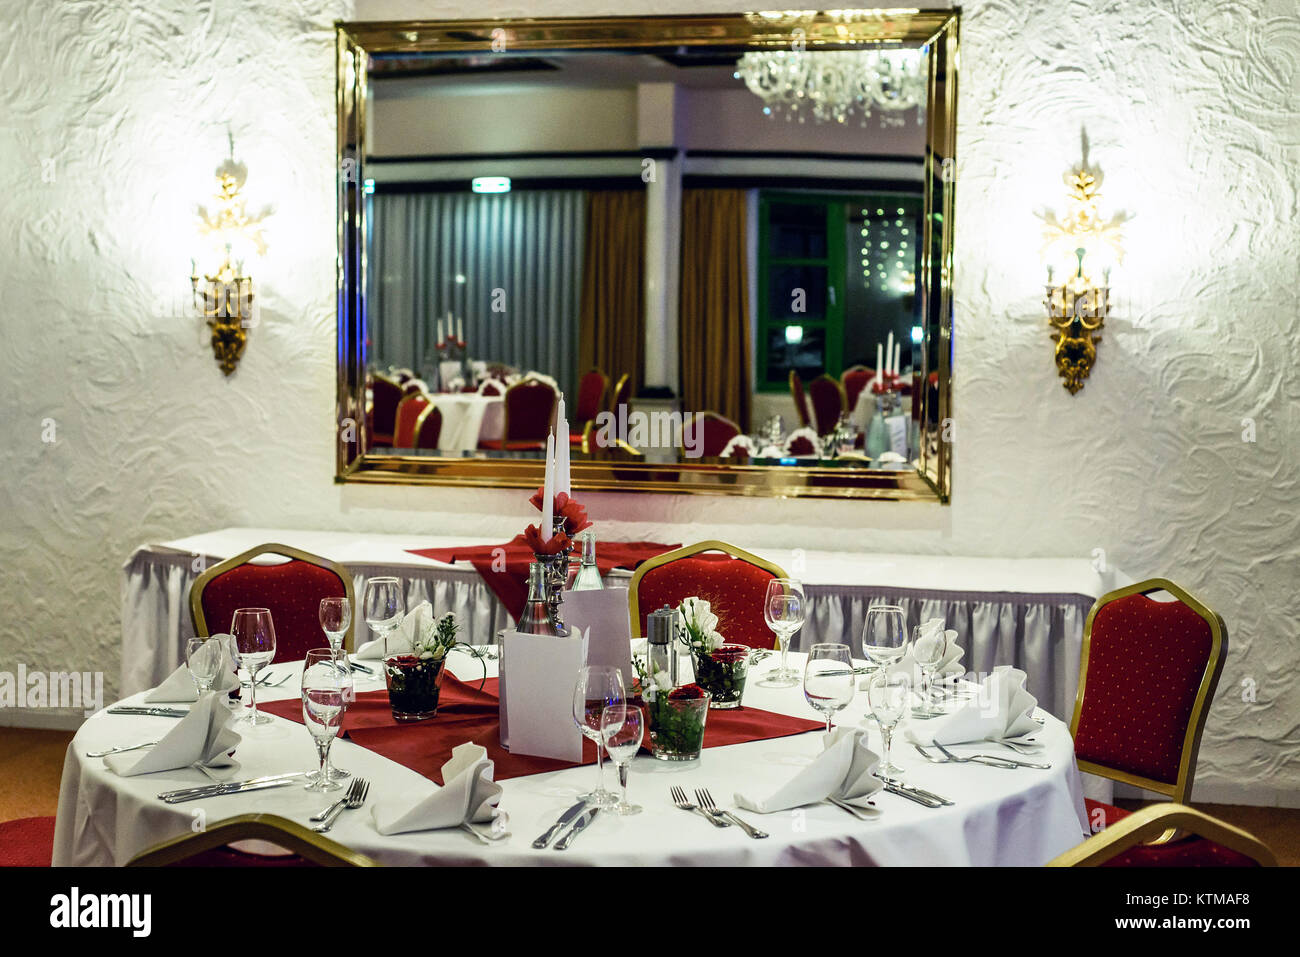 Banquet With Red Table Setting Red Tablecloth White Dishes